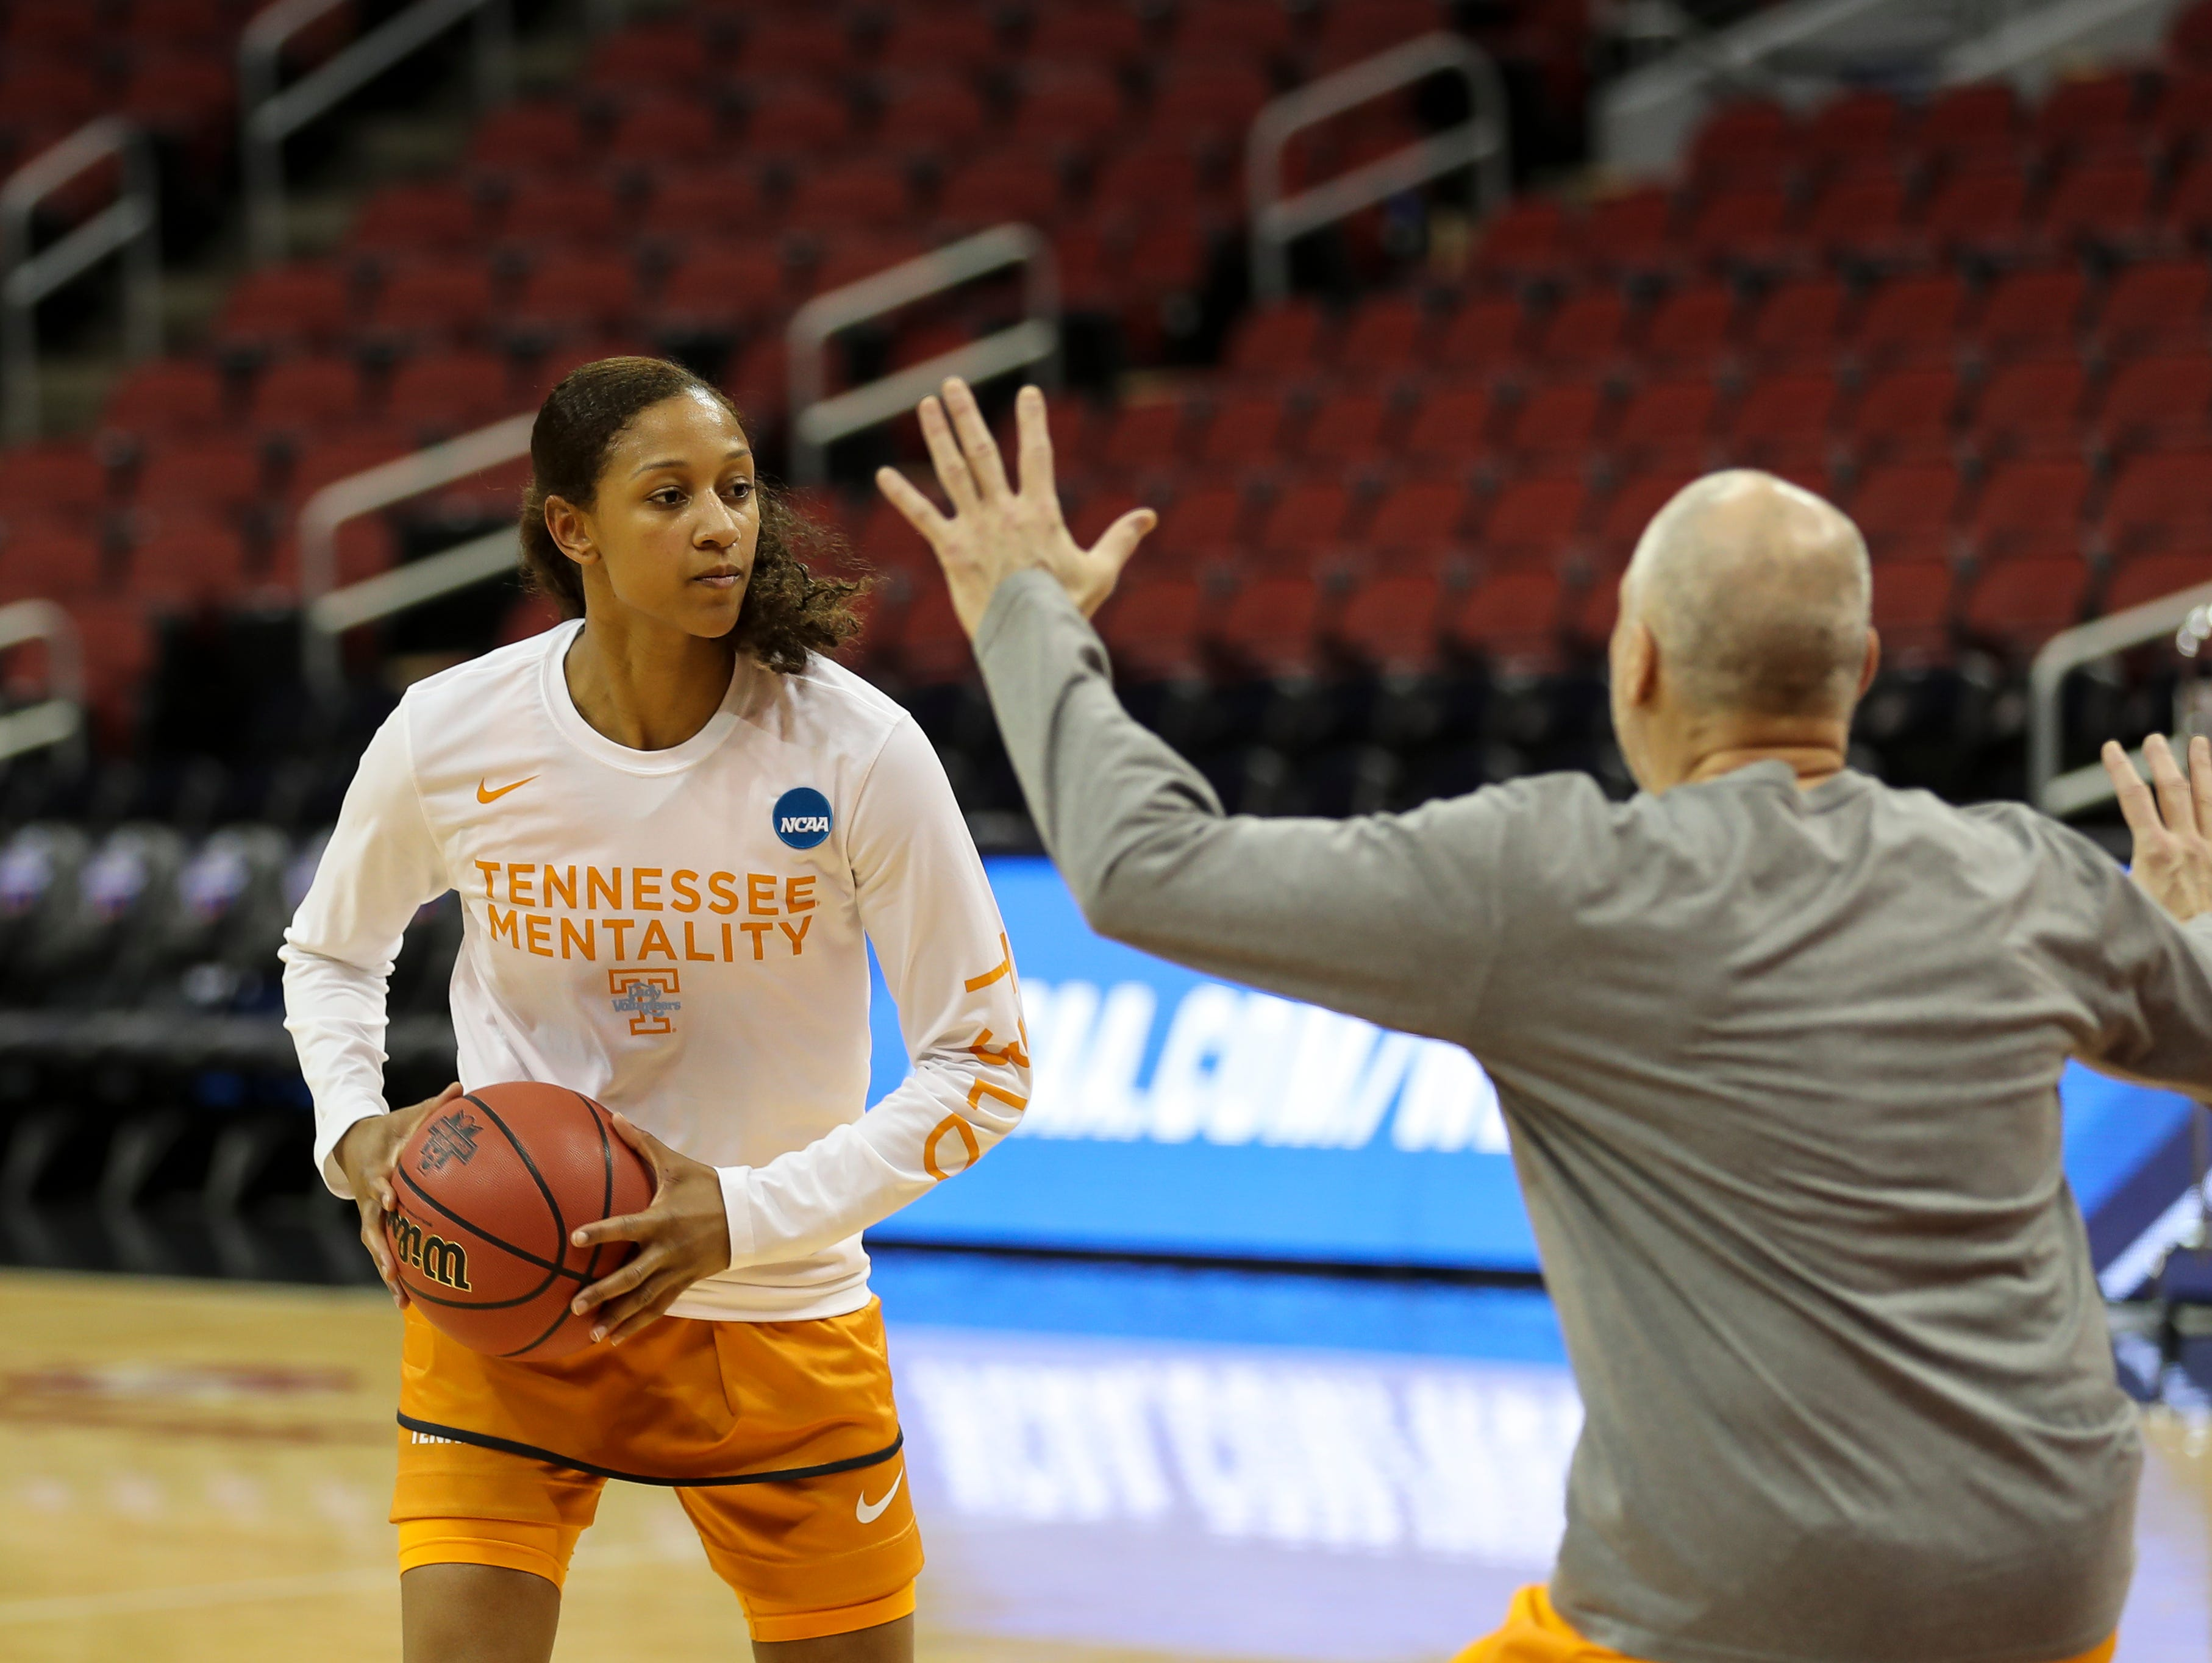 Tennessee's Jaime Nared needs to avoid foul trouble in the Lady Vols' NCAA tournament showdown against Louisville.